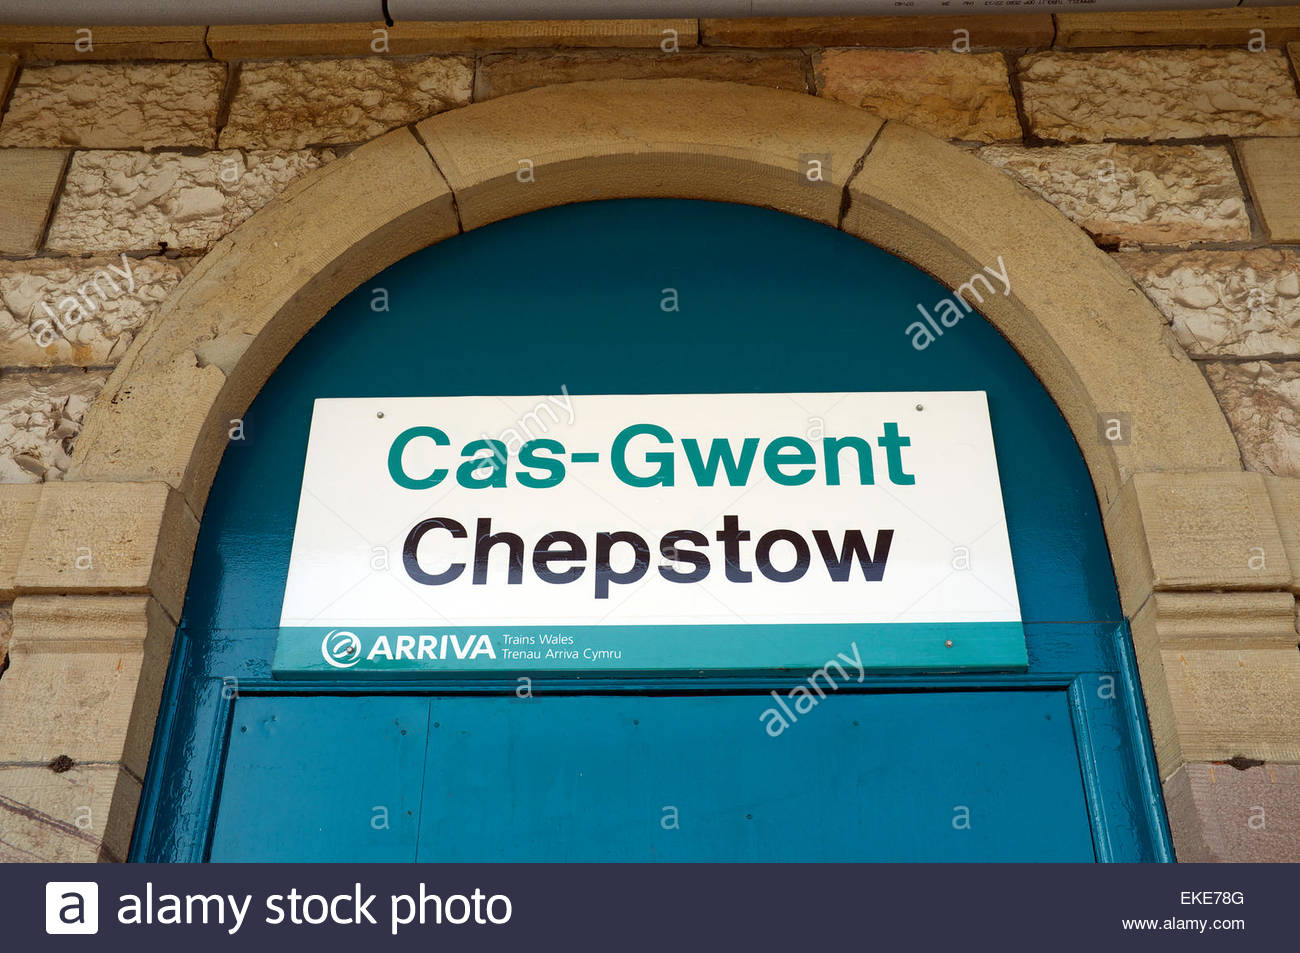 Cas-Gwent / Chepstow. Bilingual place name sign at the railway station. Chepstow, Gwent, Wales, UK. - Stock Image